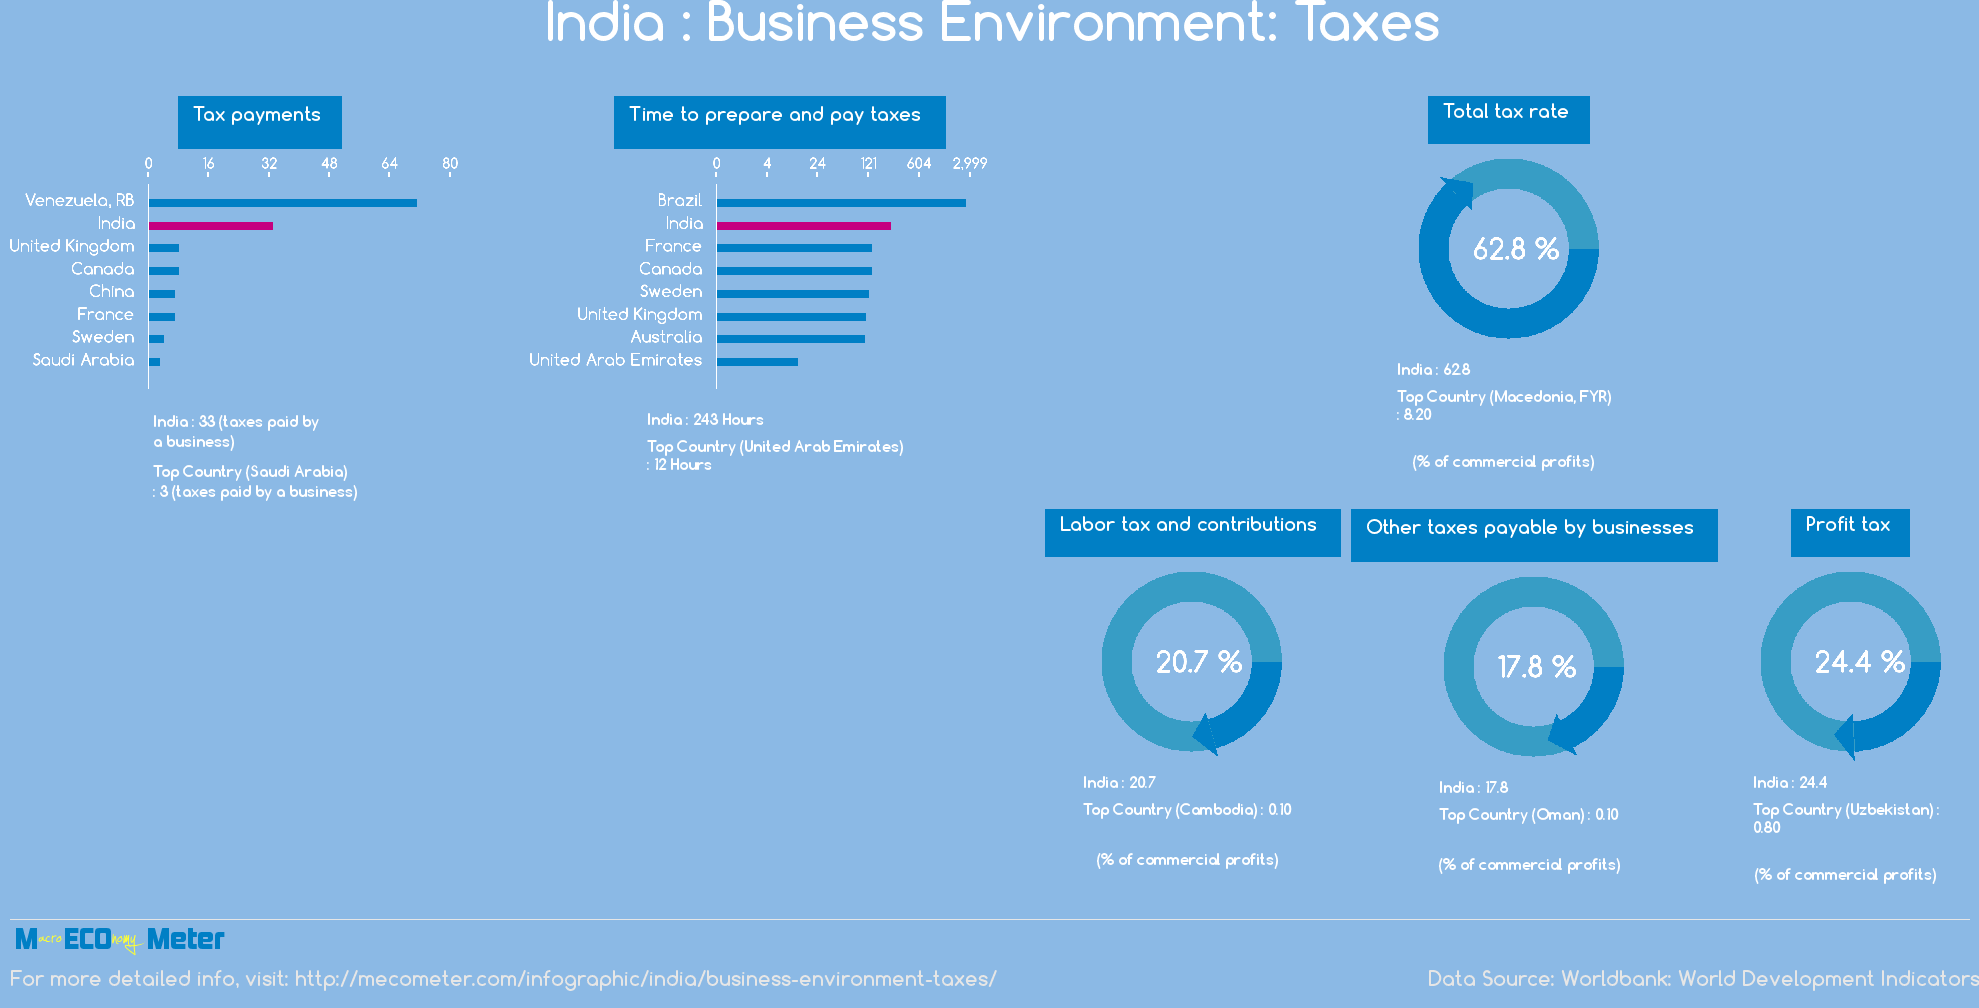 India : Business Environment: Taxes